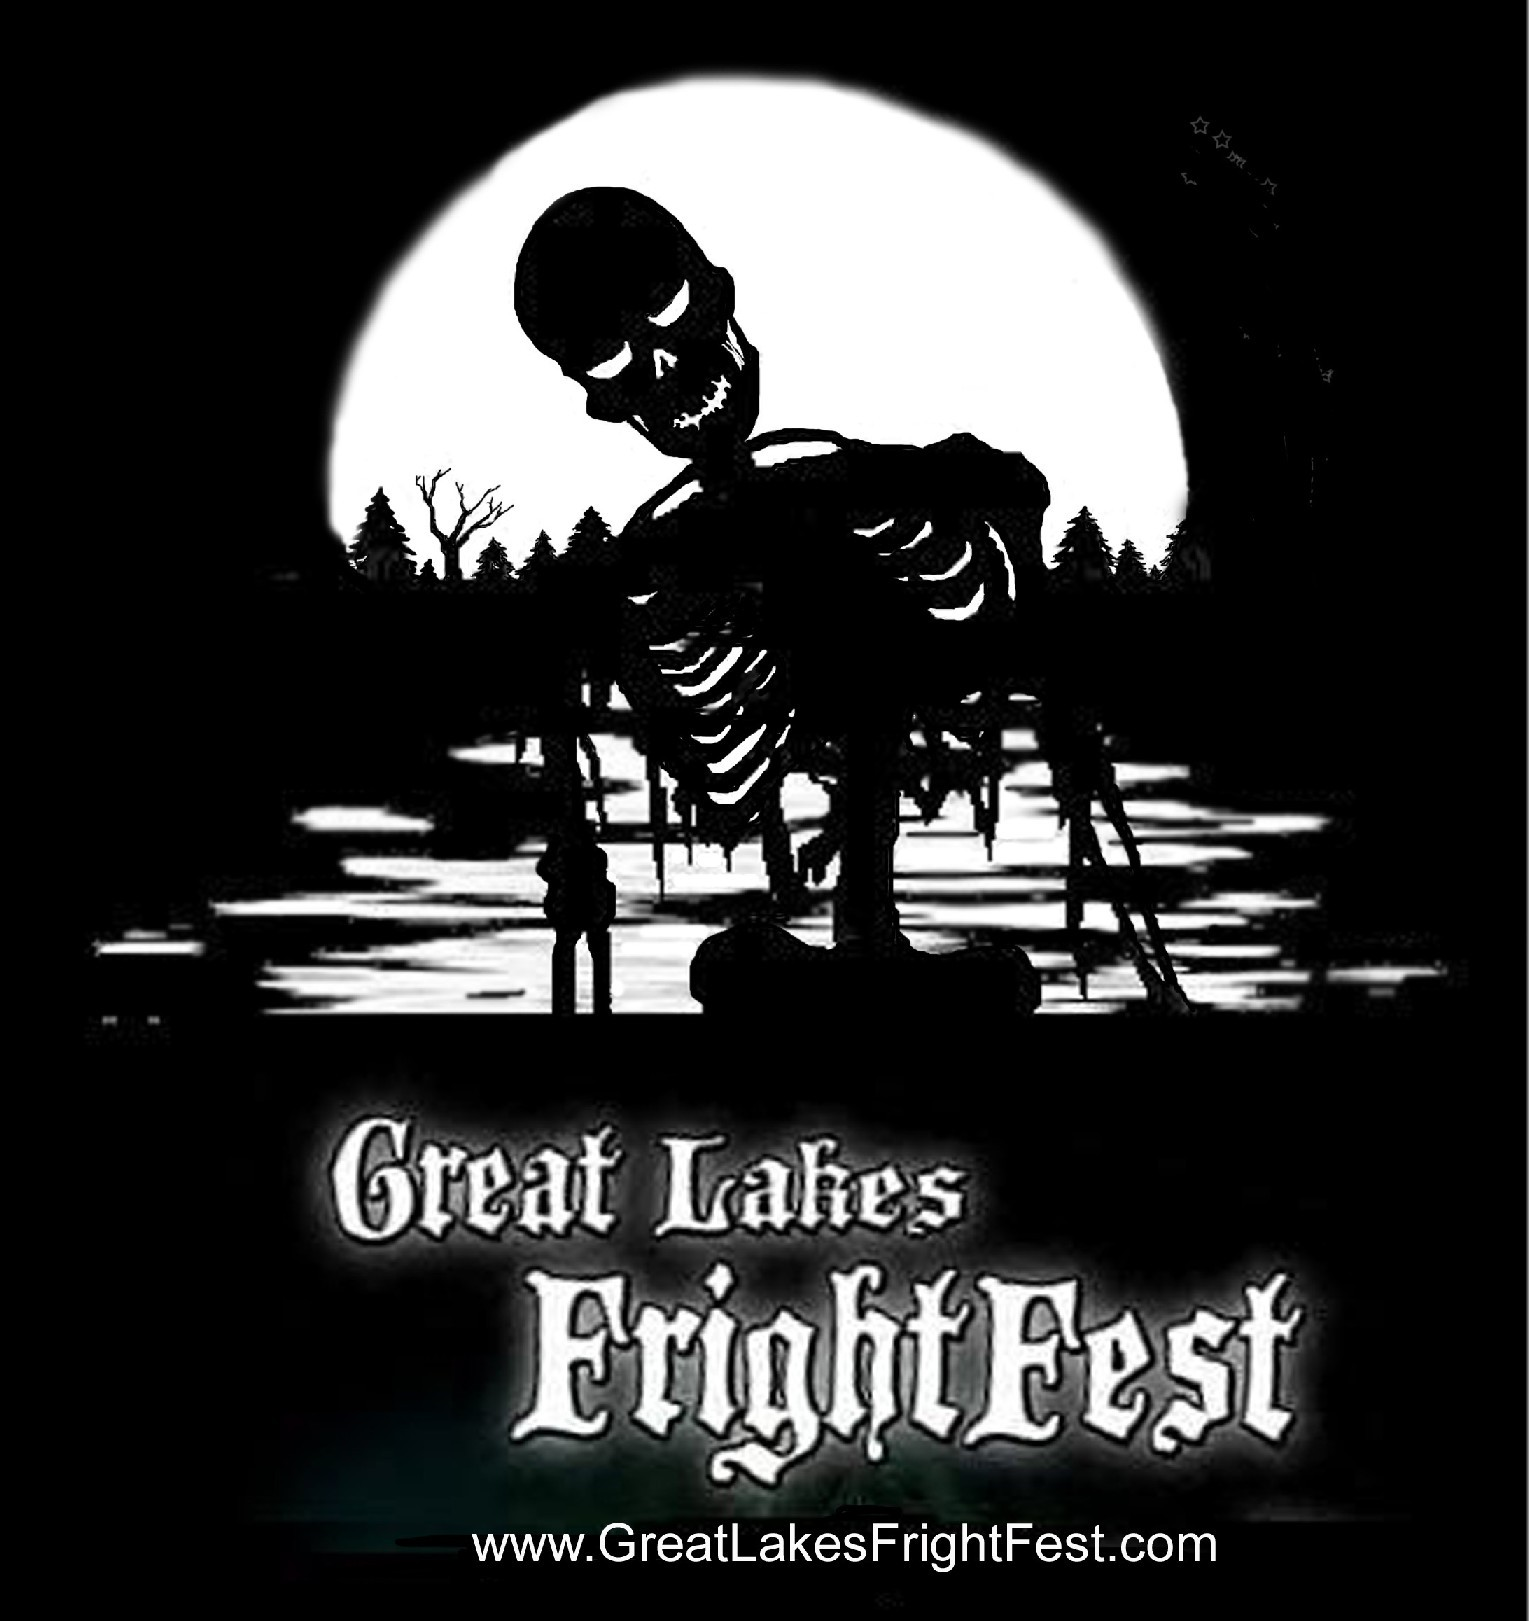 Great Lakes Frightfest